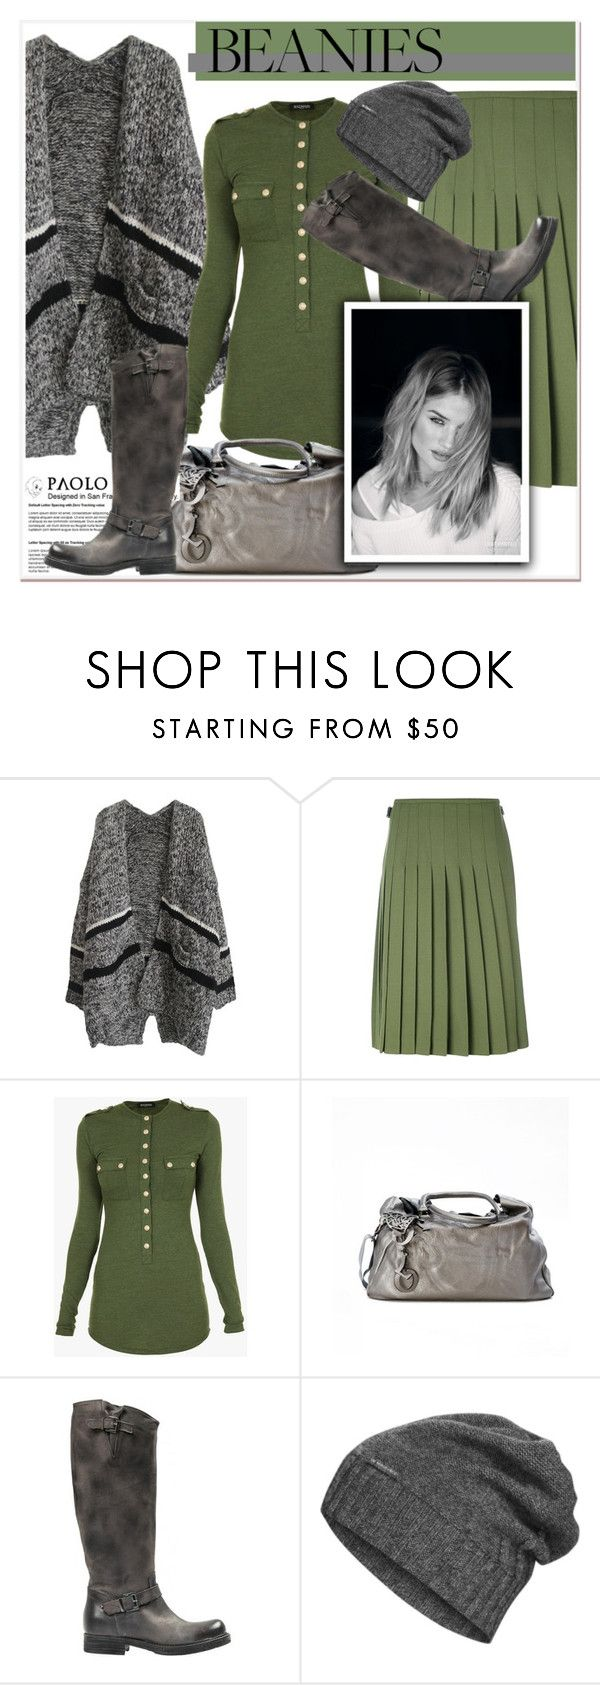 """""""Bad Hair Day: Beanies and PaoloShoes"""" by spenderellastyle ❤ liked on Polyvore featuring Le Kilt, Balmain and The North Face"""